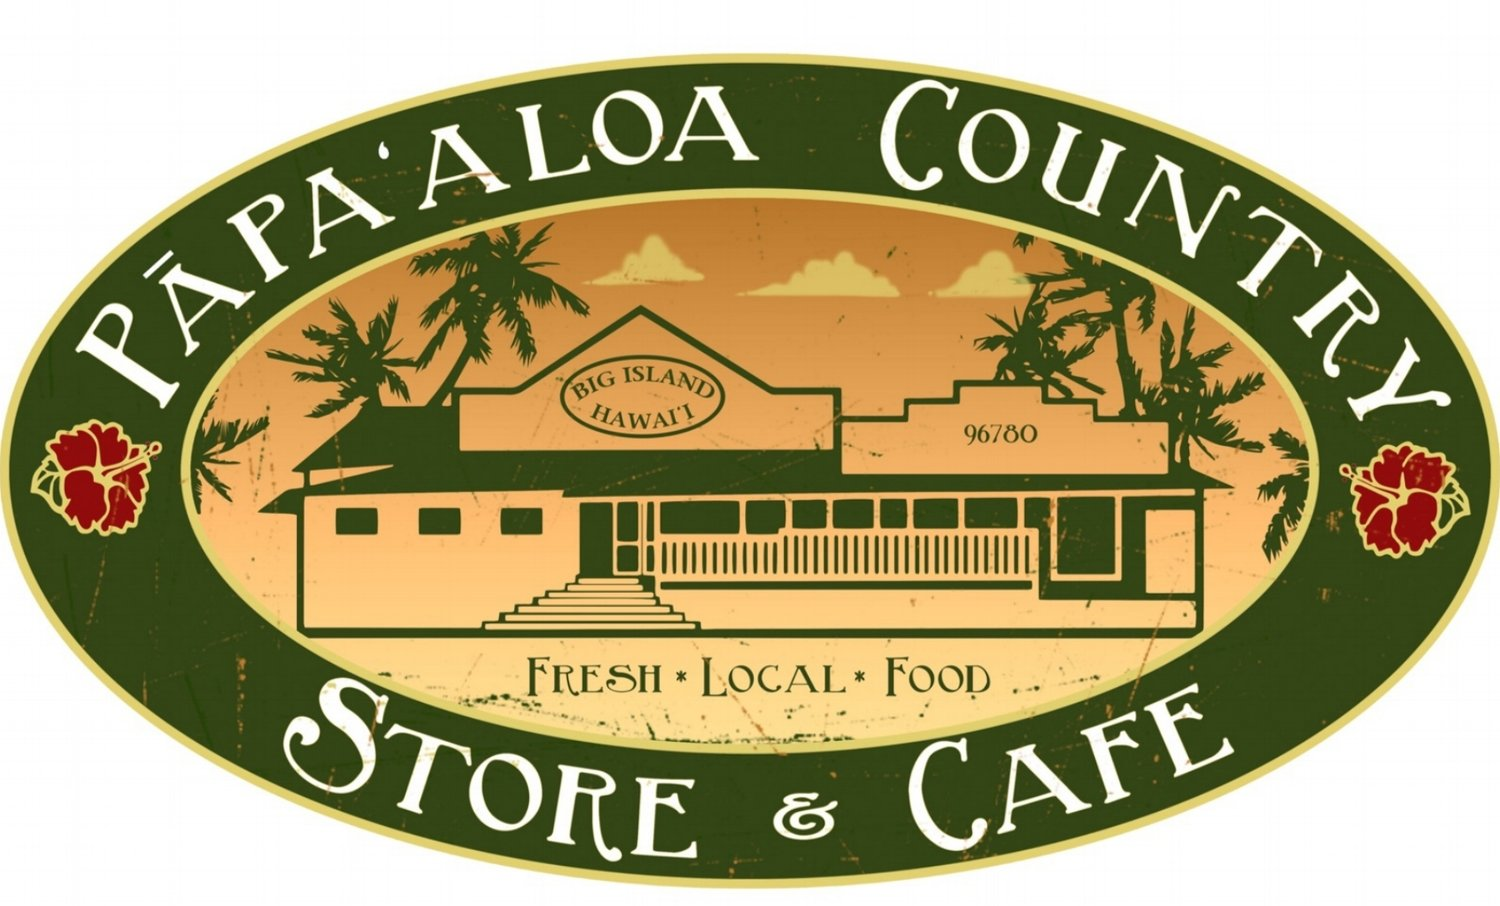 Papaaloa Country Store & Cafe